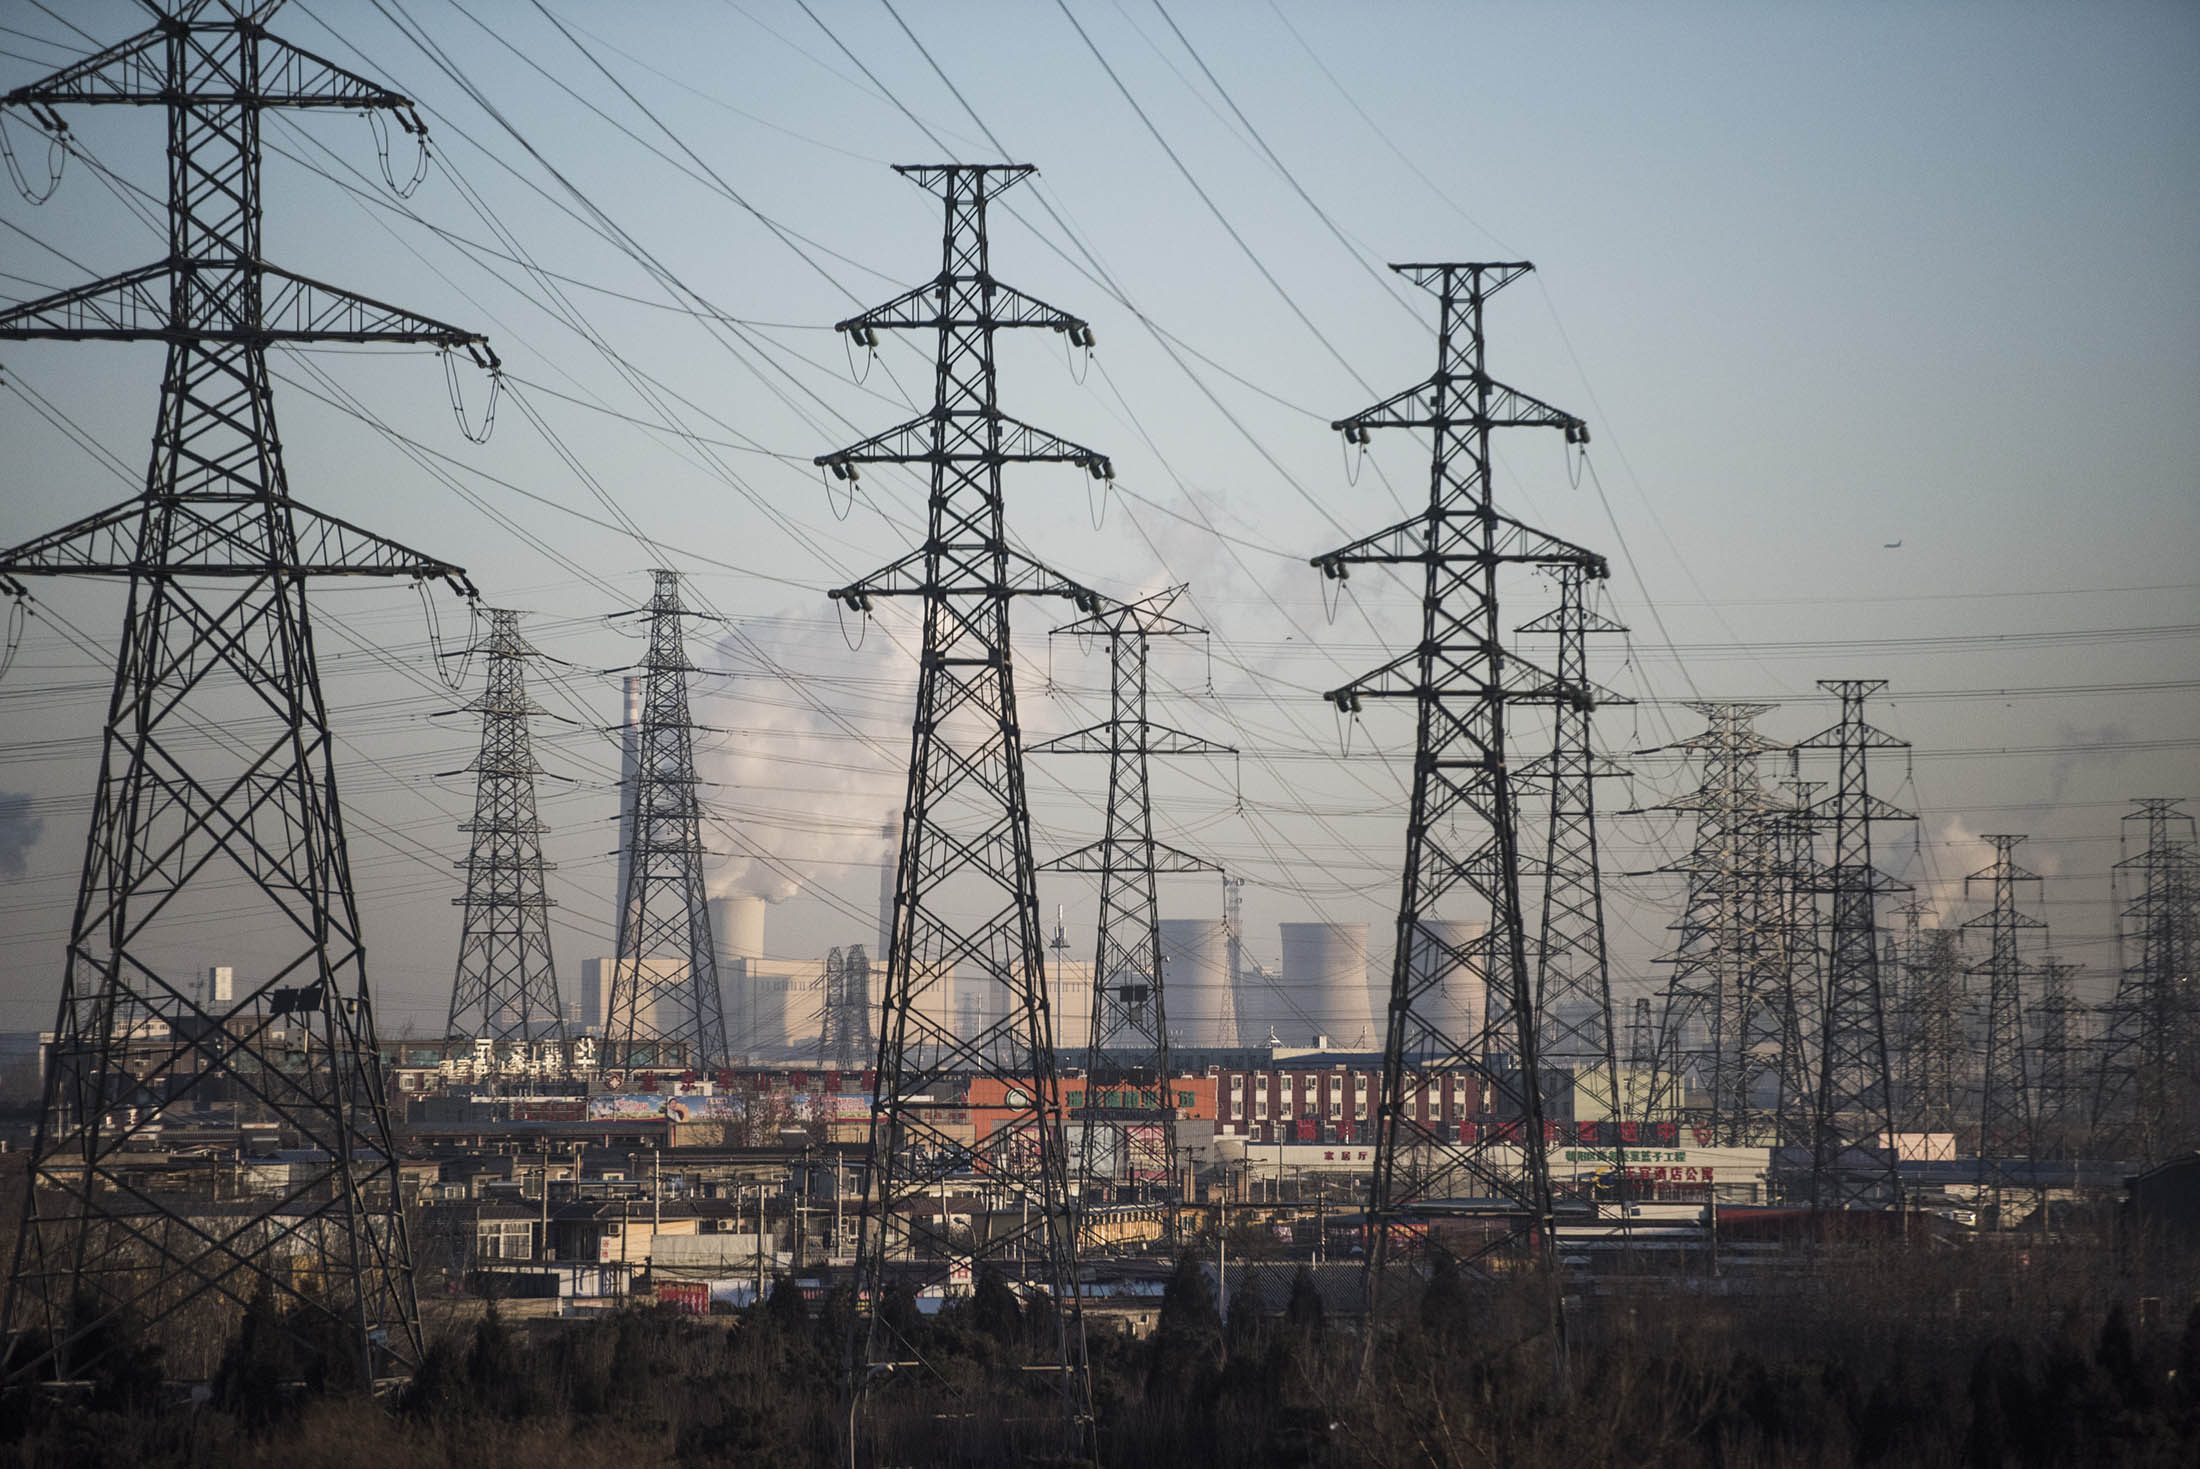 China Seeks to Export Power Amid Signs It Built Too Many Plants - Bloomberg